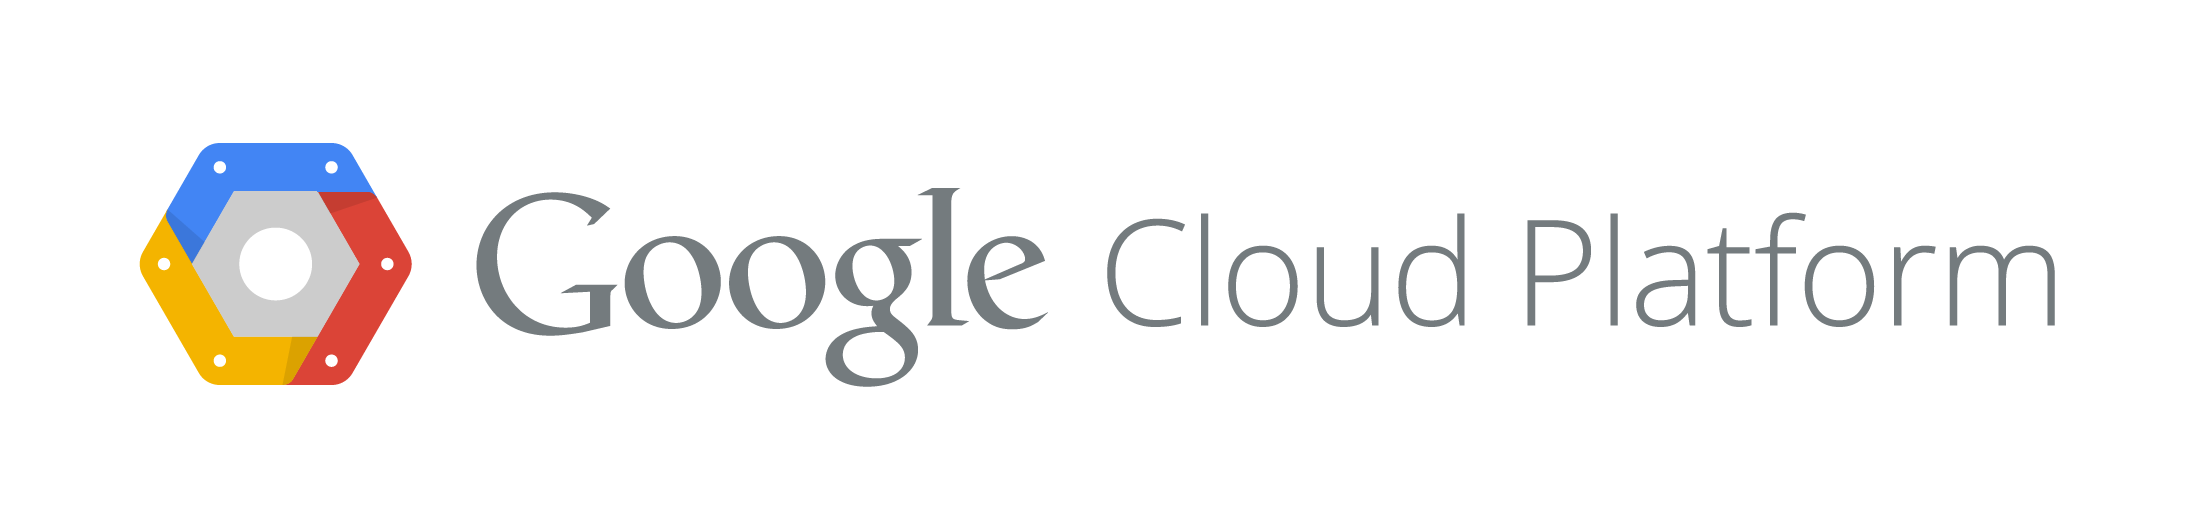 Google Compute Engine Driver Documentation — Apache Libcloud 2 5 1